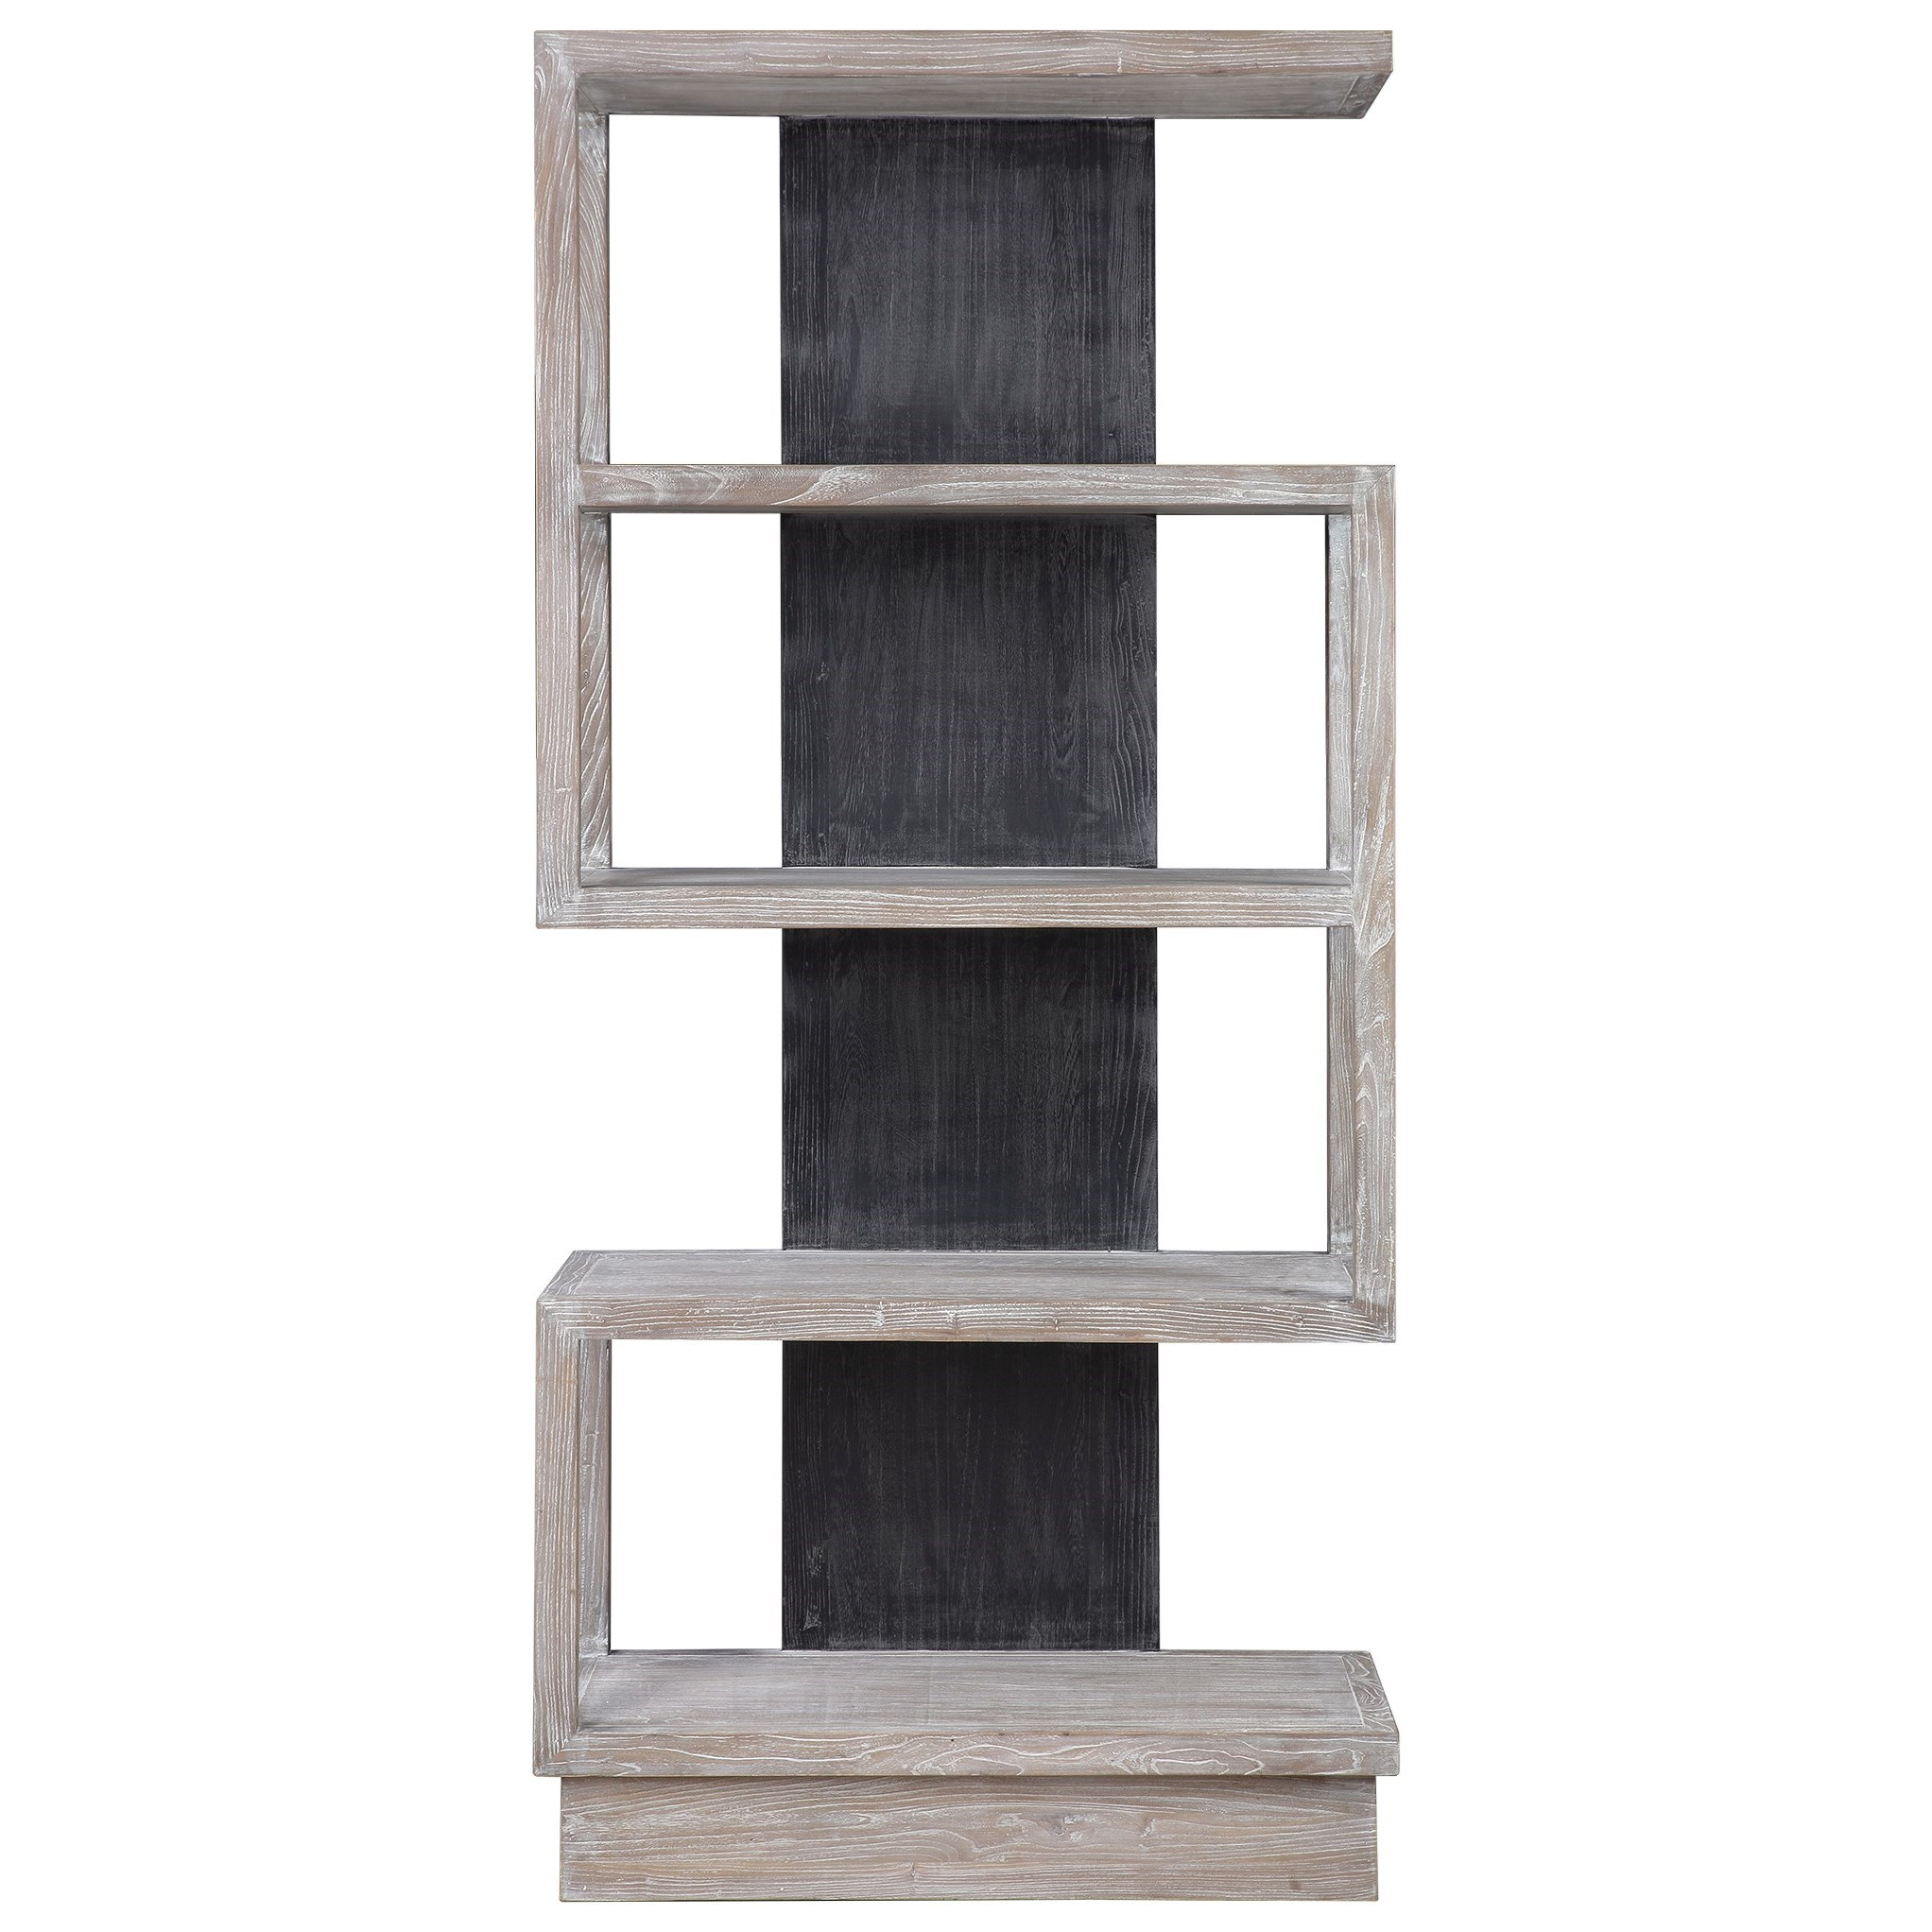 Accent Furniture - Bookcases Nicasia Modern Etagere by Uttermost at Goffena Furniture & Mattress Center